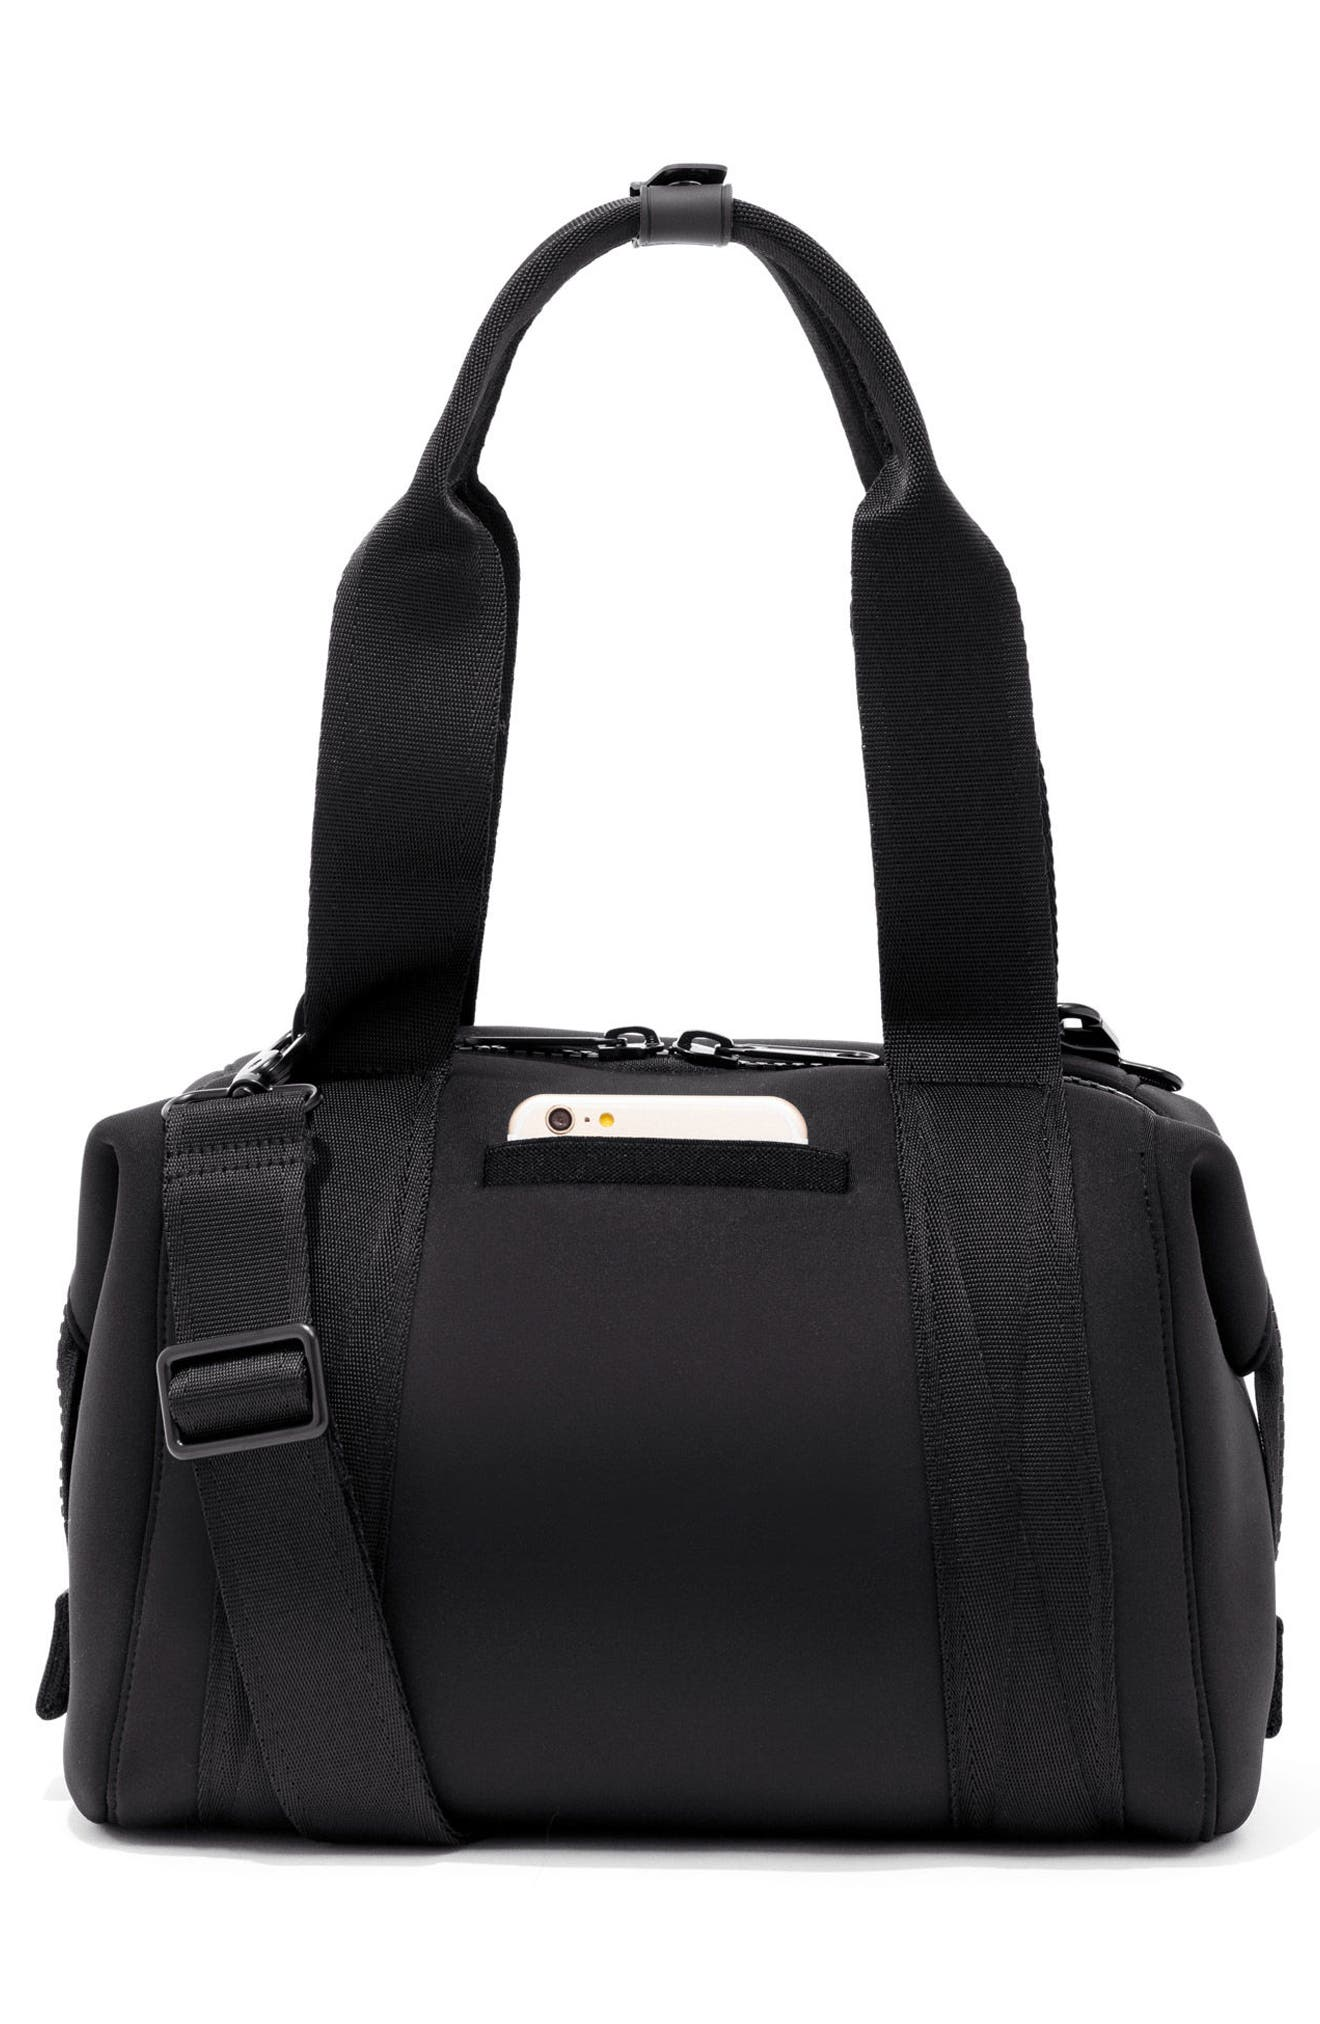 365 Small Landon Carryall Duffel Bag,                             Alternate thumbnail 3, color,                             Onyx